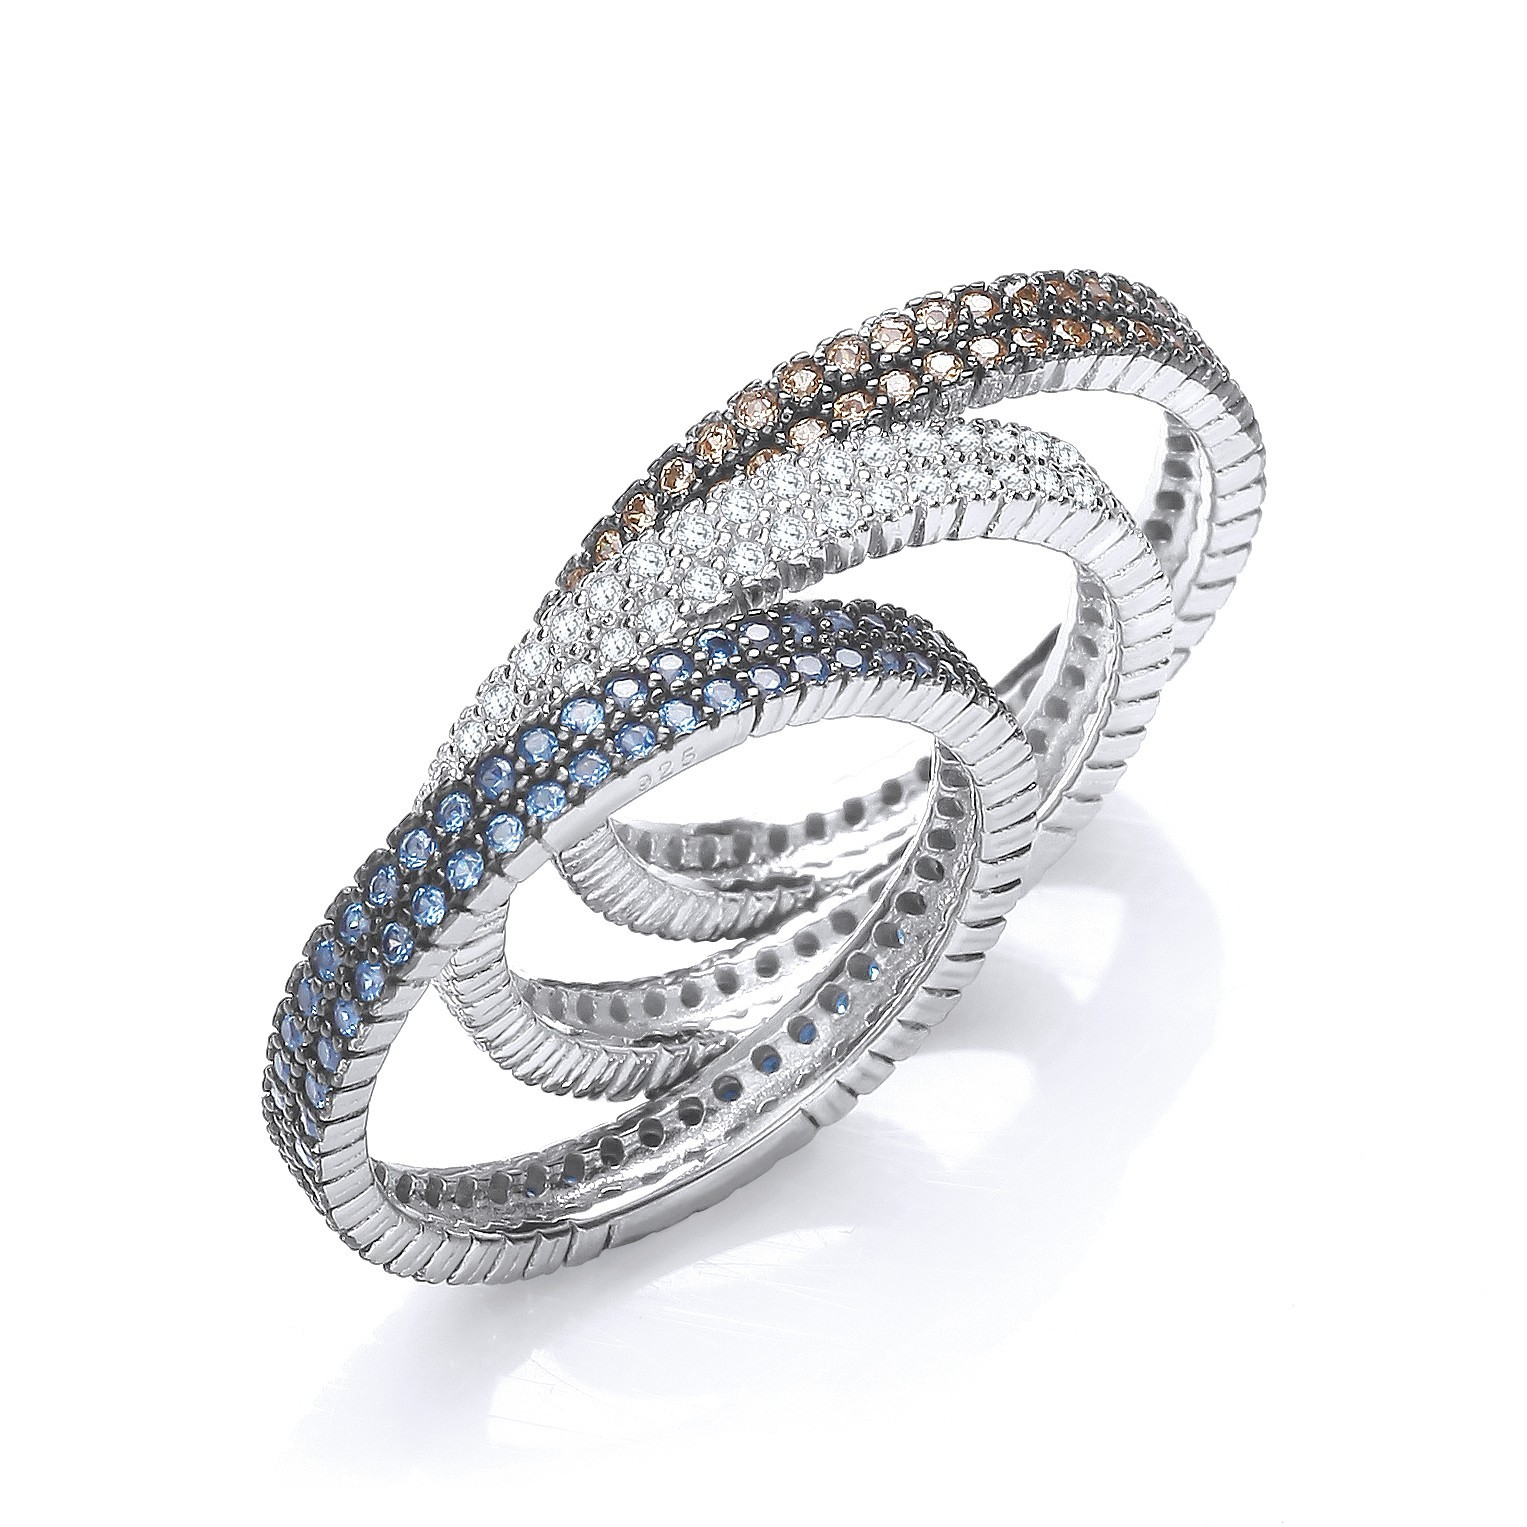 Micro Pave' 3 Band Ring (White, Sapphire & Champagne)